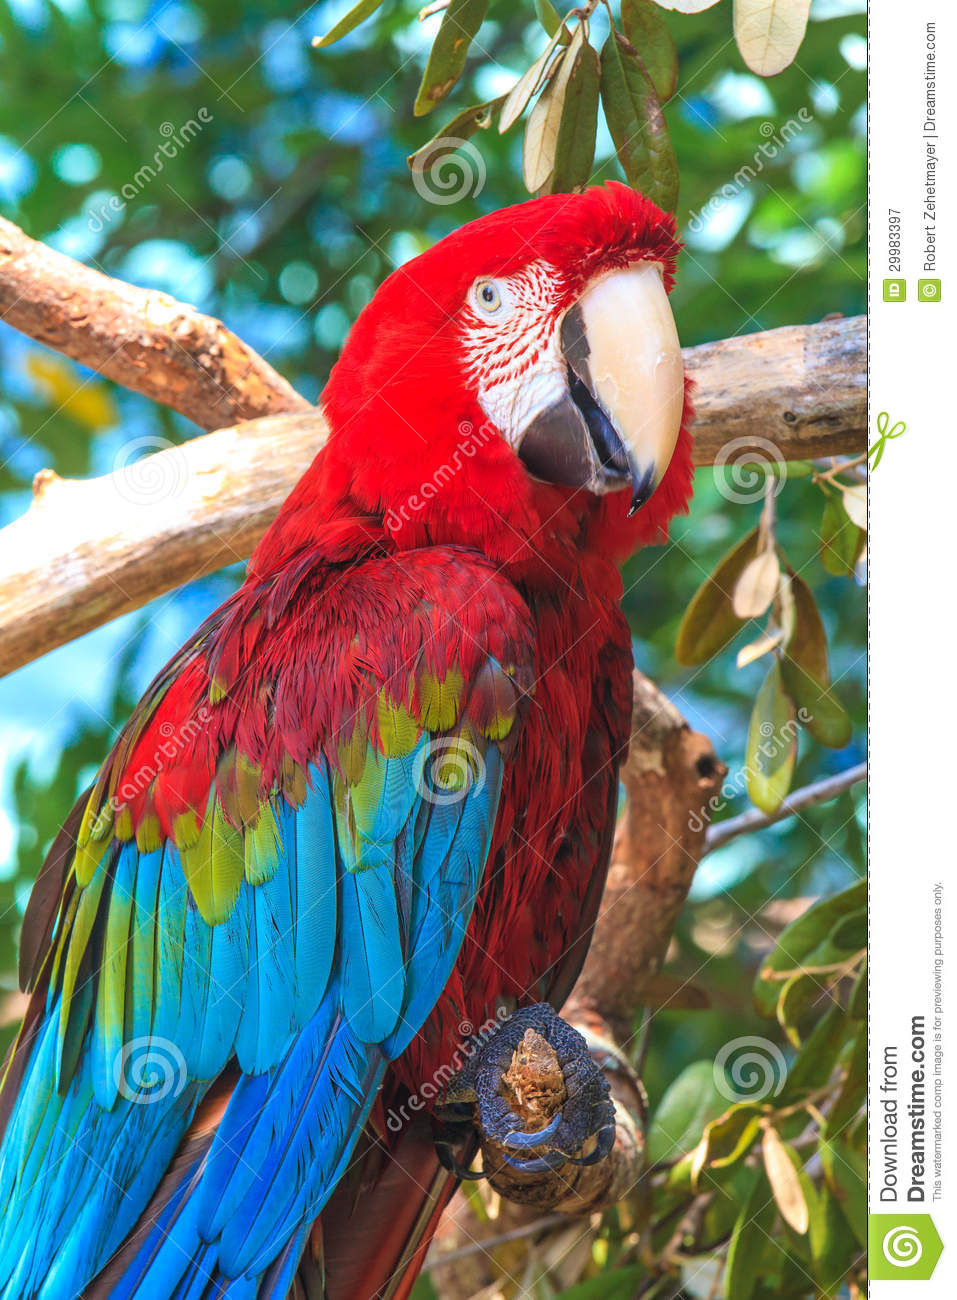 Red Animal Print Wallpaper Red Blue Ara Parrot Royalty Free Stock Photography Image